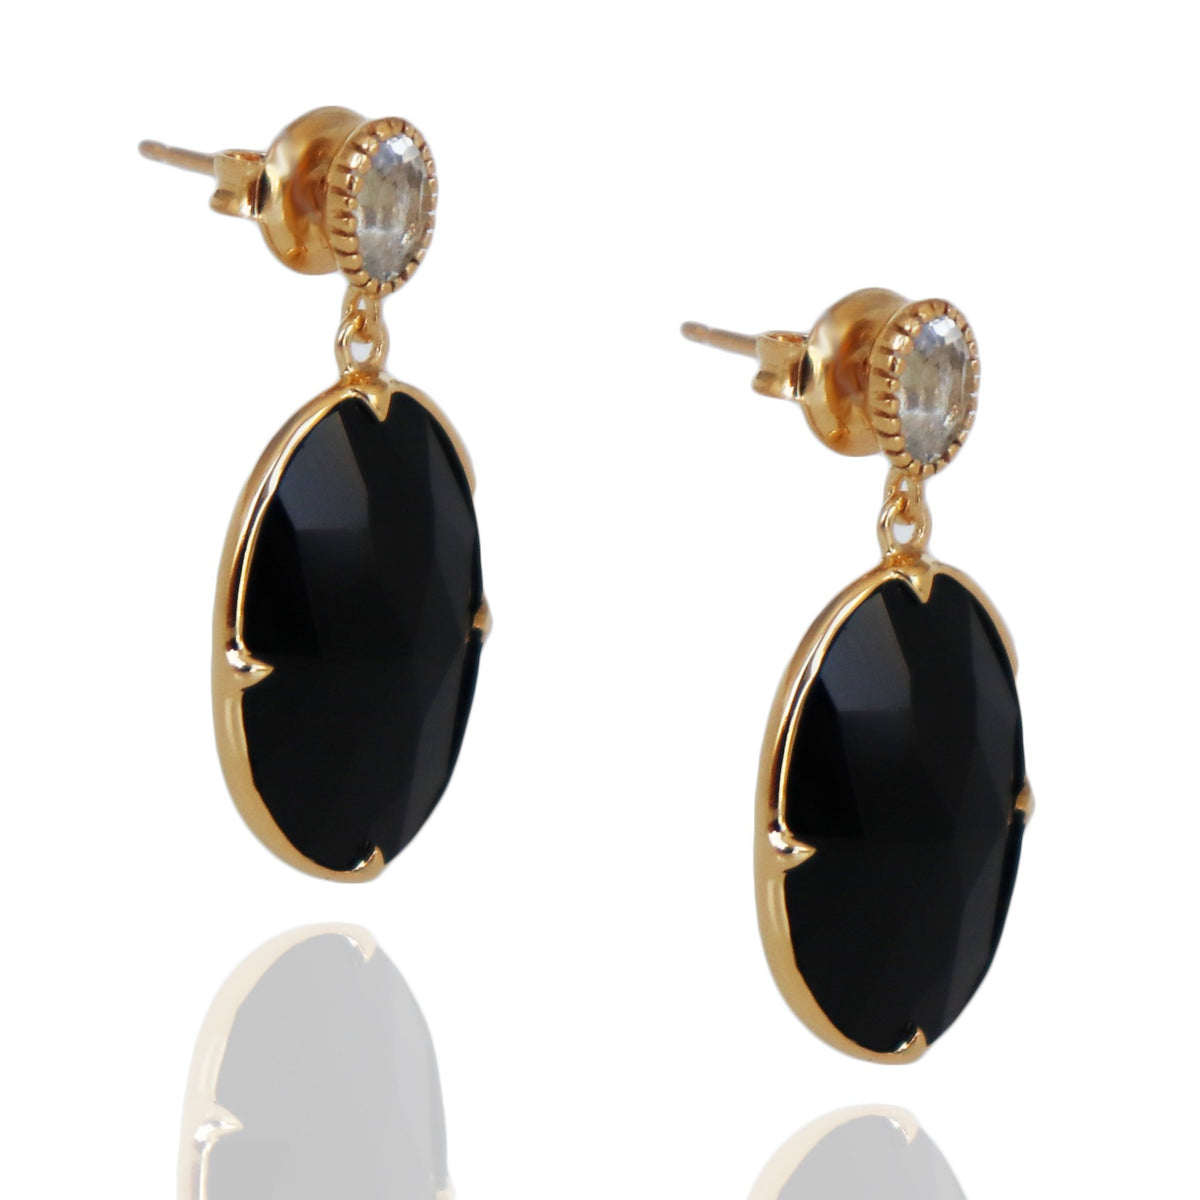 FEARLESS EARRINGS - BLACK ONYX, WHITE TOPAZ & GOLD - SO PRETTY CARA COTTER